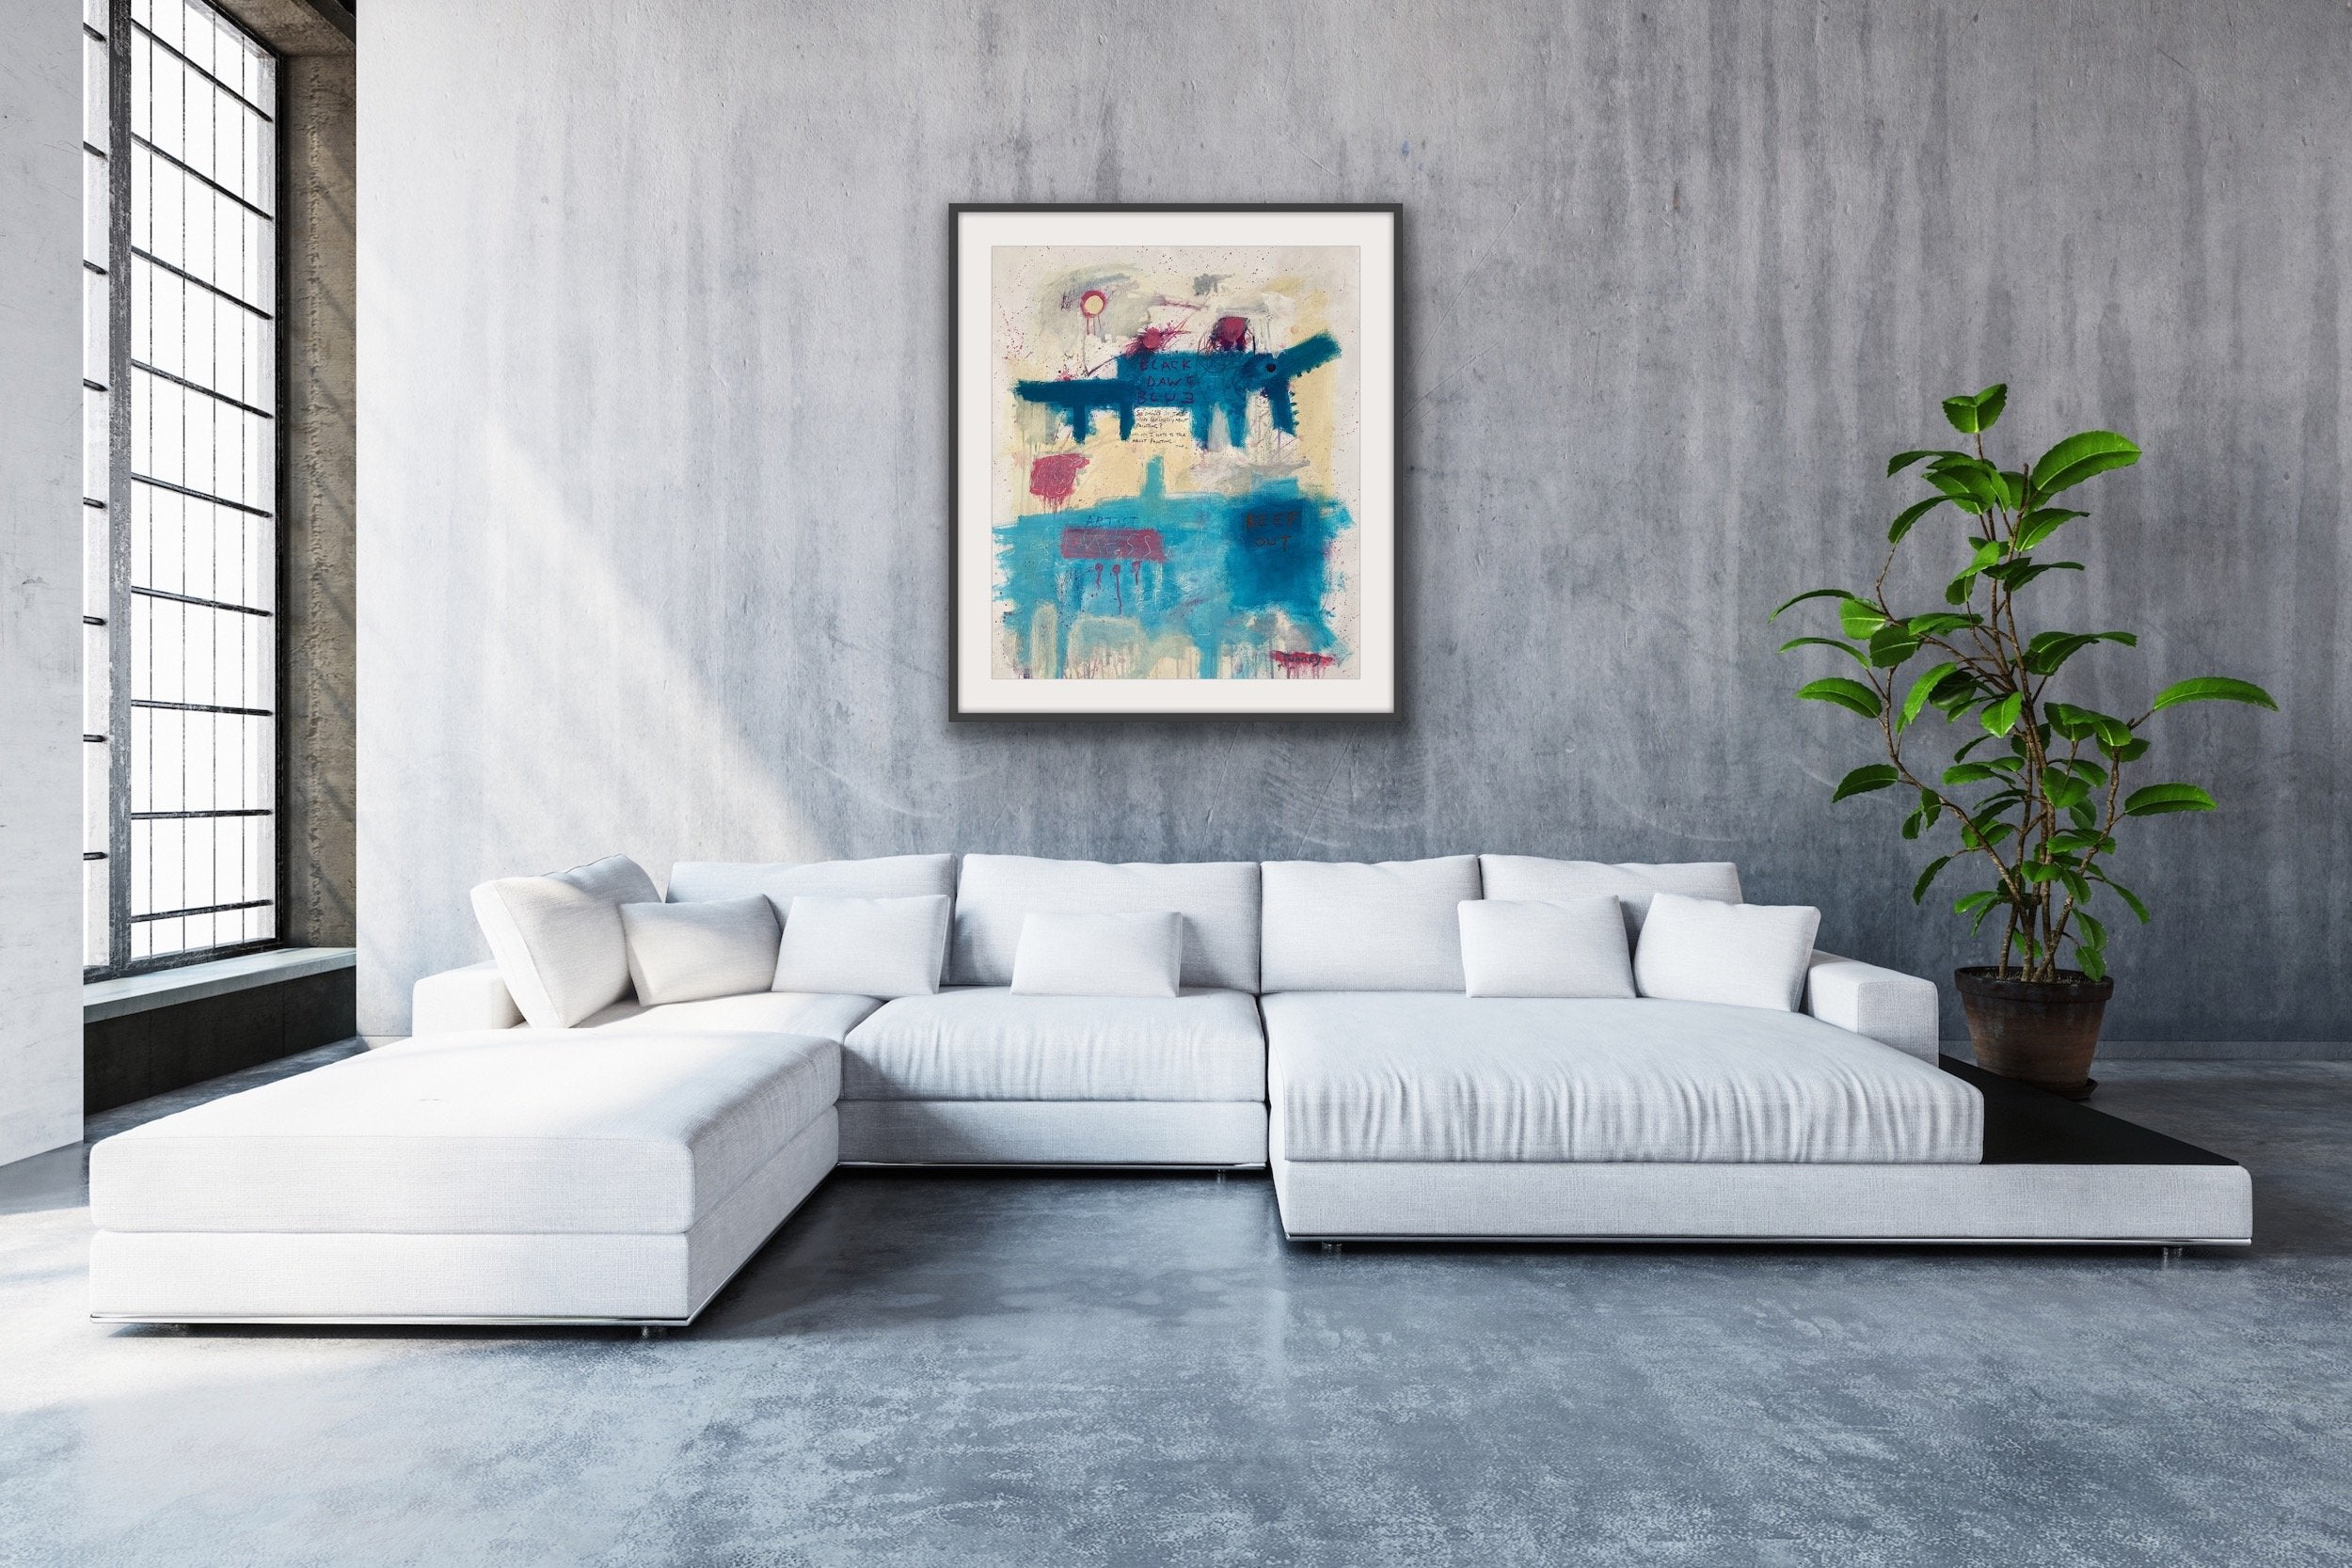 'Black Dawg Blue', an abstract artwork by contemporary artist Steven James Tunney, shown in situ